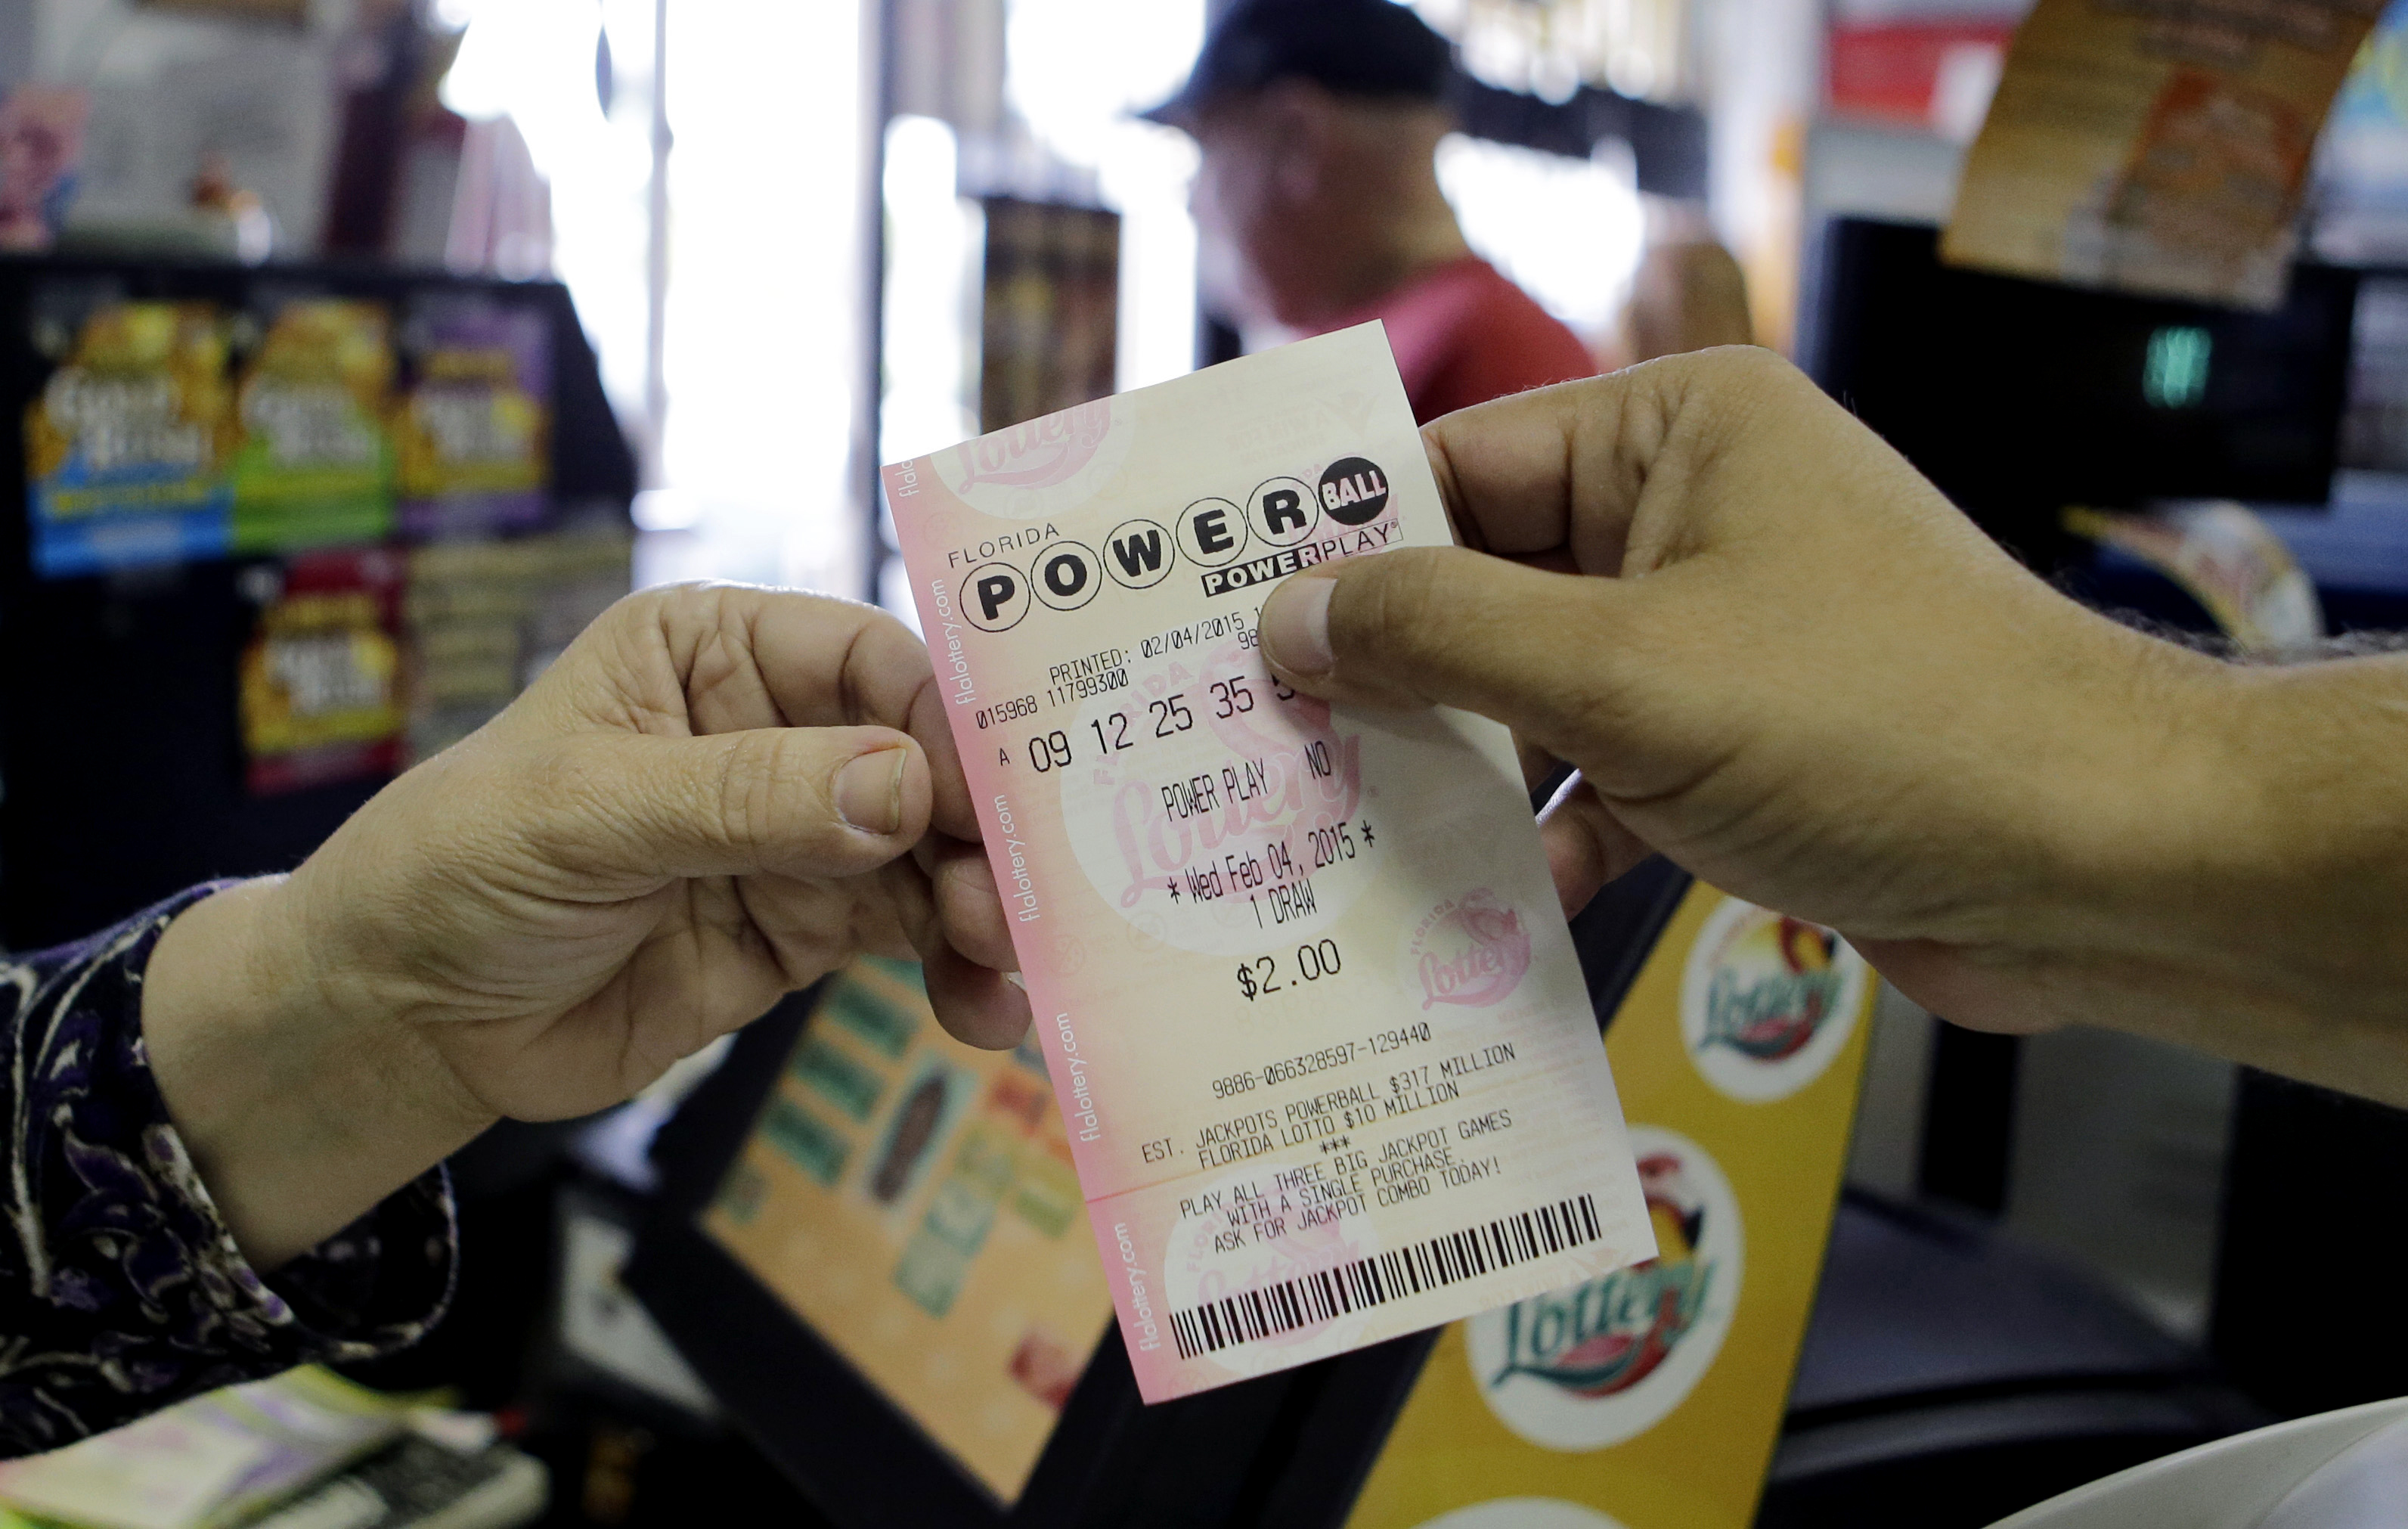 A store clerk hands a customer his Powerball ticket at a local grocery store in Hialeah, Fla., Wednesday, Feb. 4, 2015